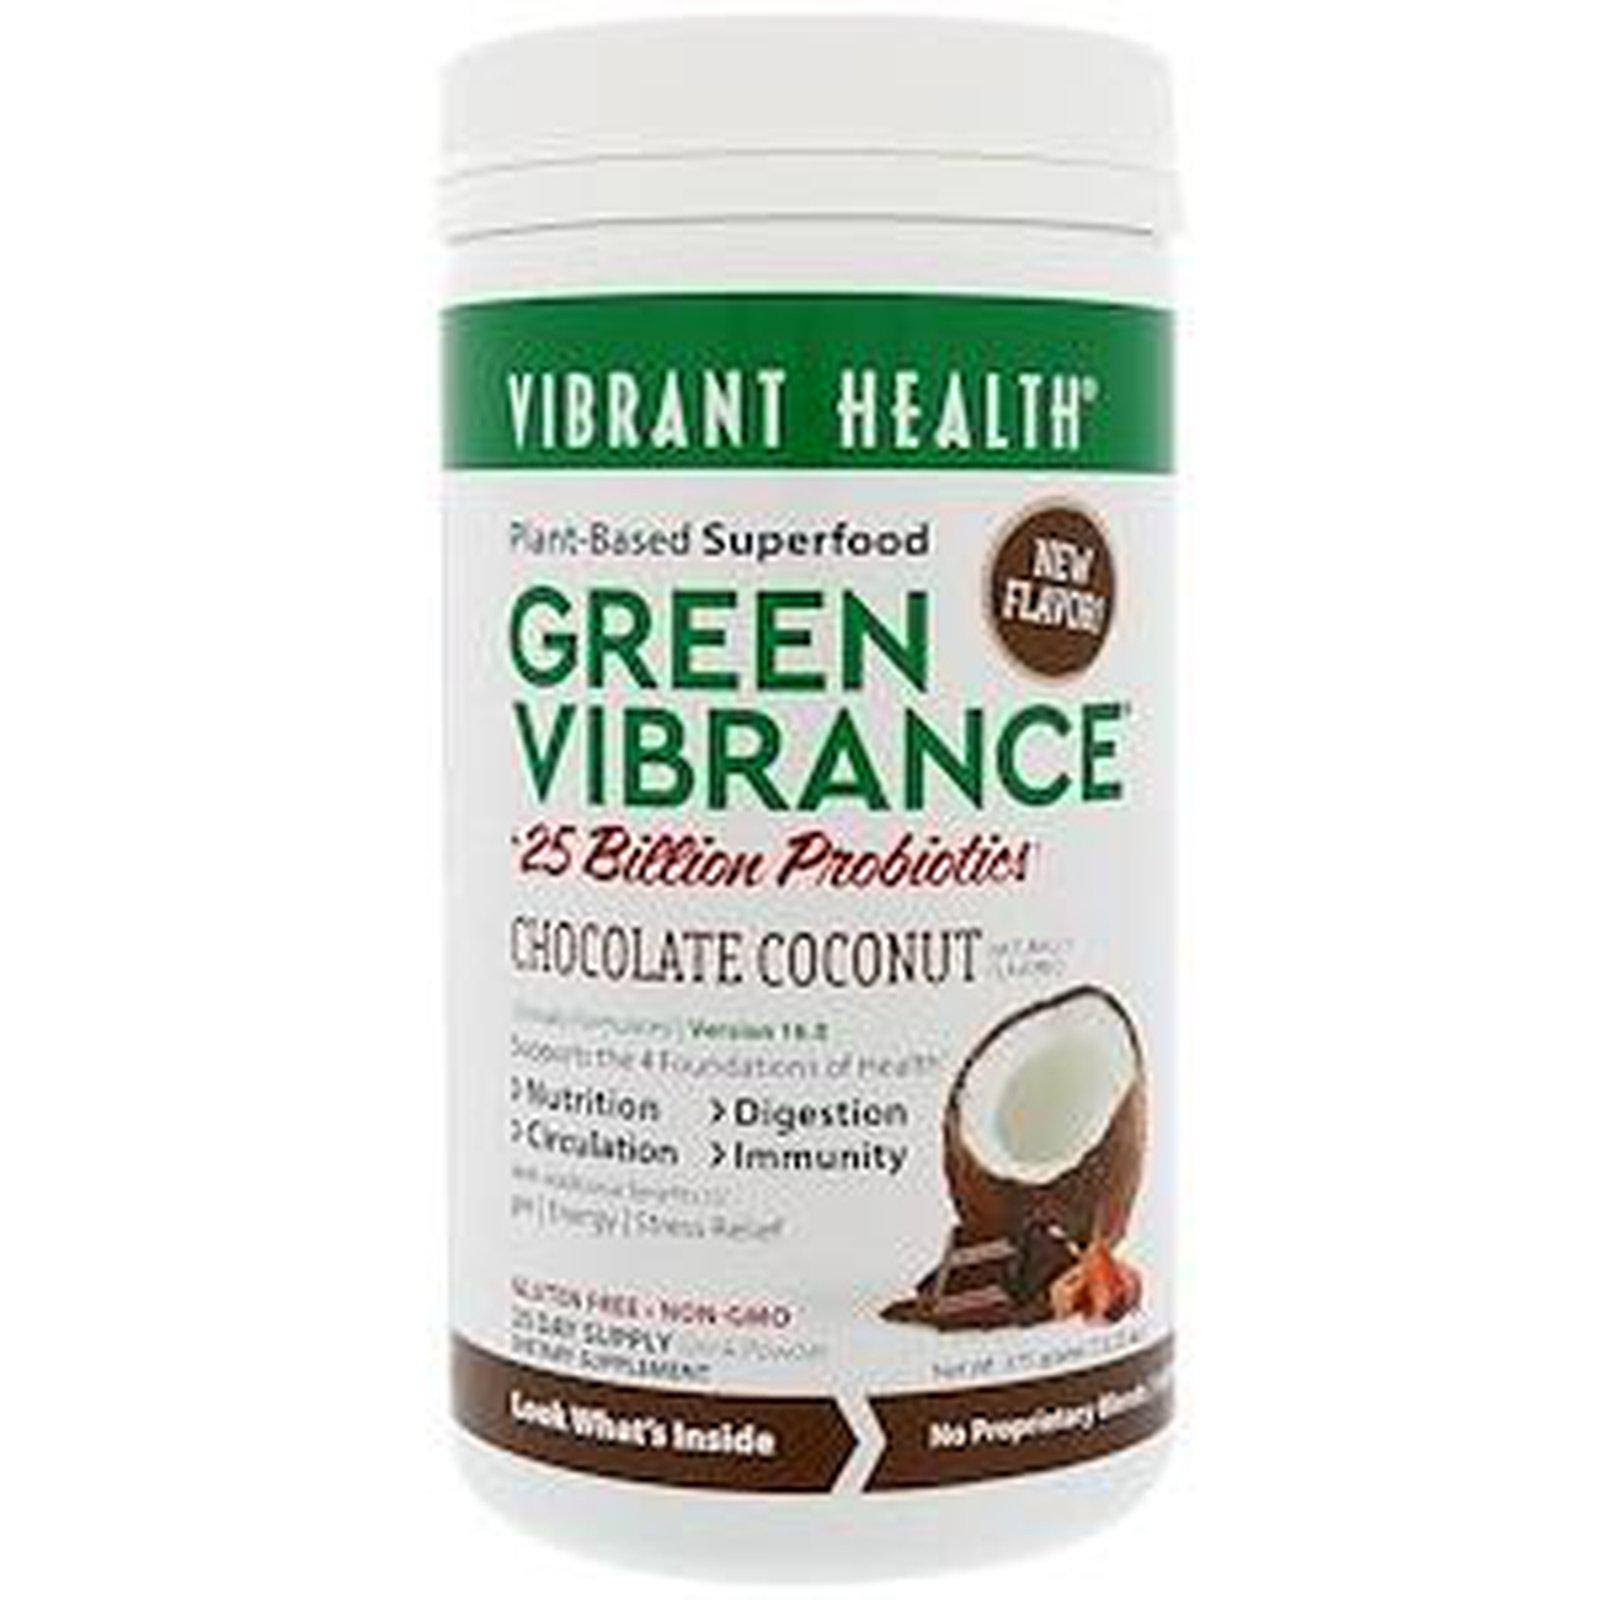 Vibrant Health Green Vibrance, Chocolate Coconut, Drink Powder - 13.23 oz